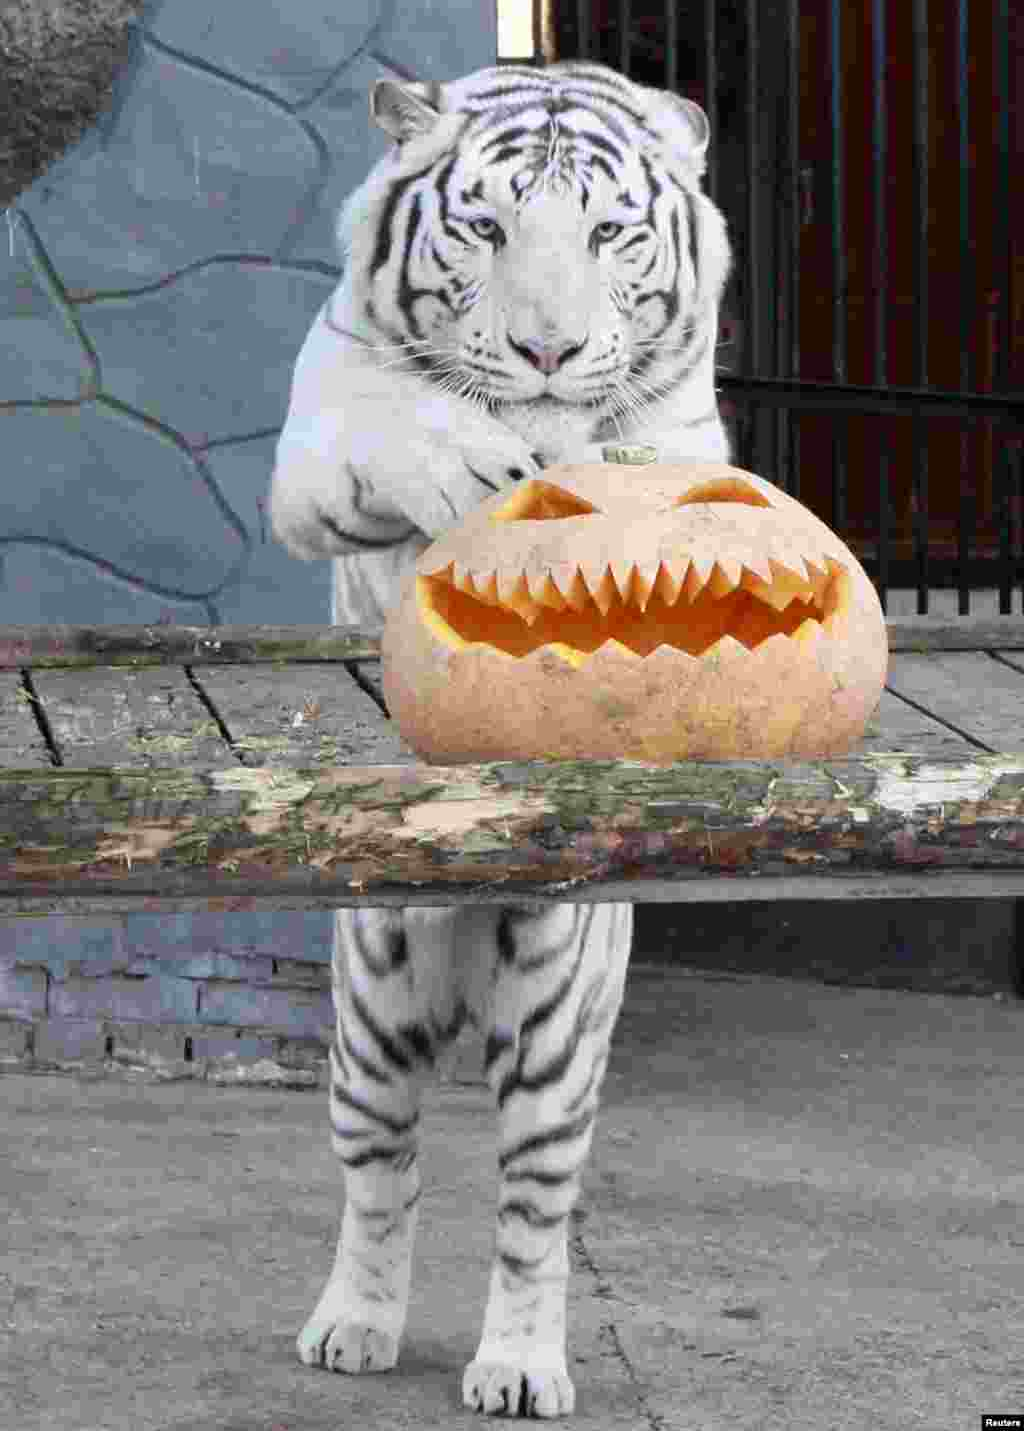 Khan, a three-year-old male Bengali white tiger, stands near a pumpkin during Halloween celebrations at the Royev Ruchey Zoo, on the suburbs of Russia's Siberian city of Krasnoyarsk, Oct. 31, 2013.